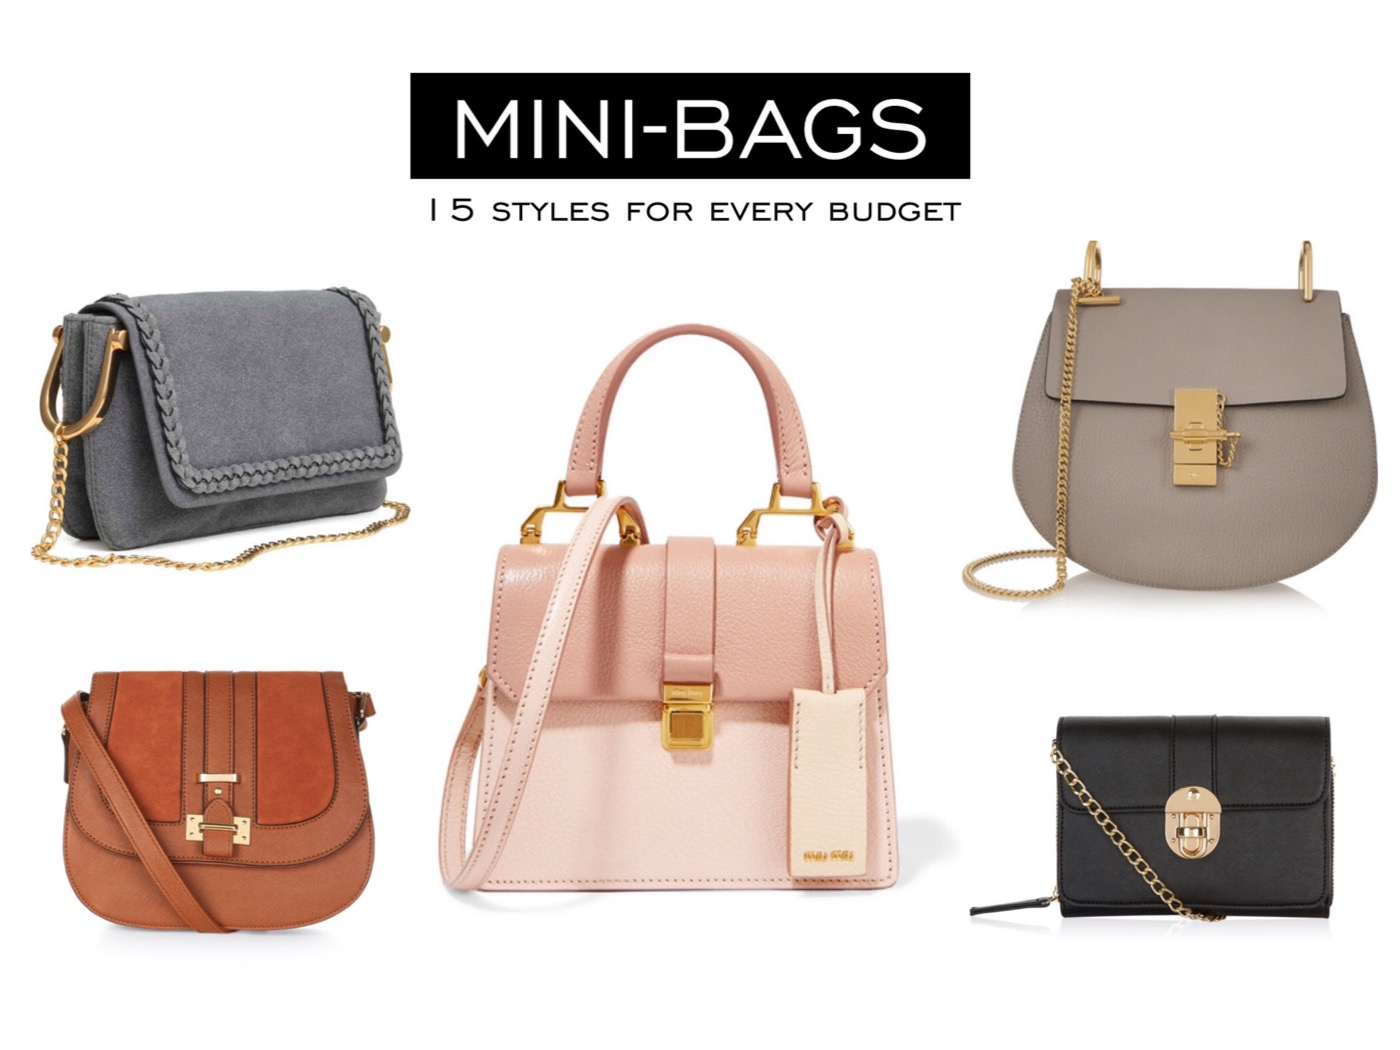 15 mini-bags for every budget